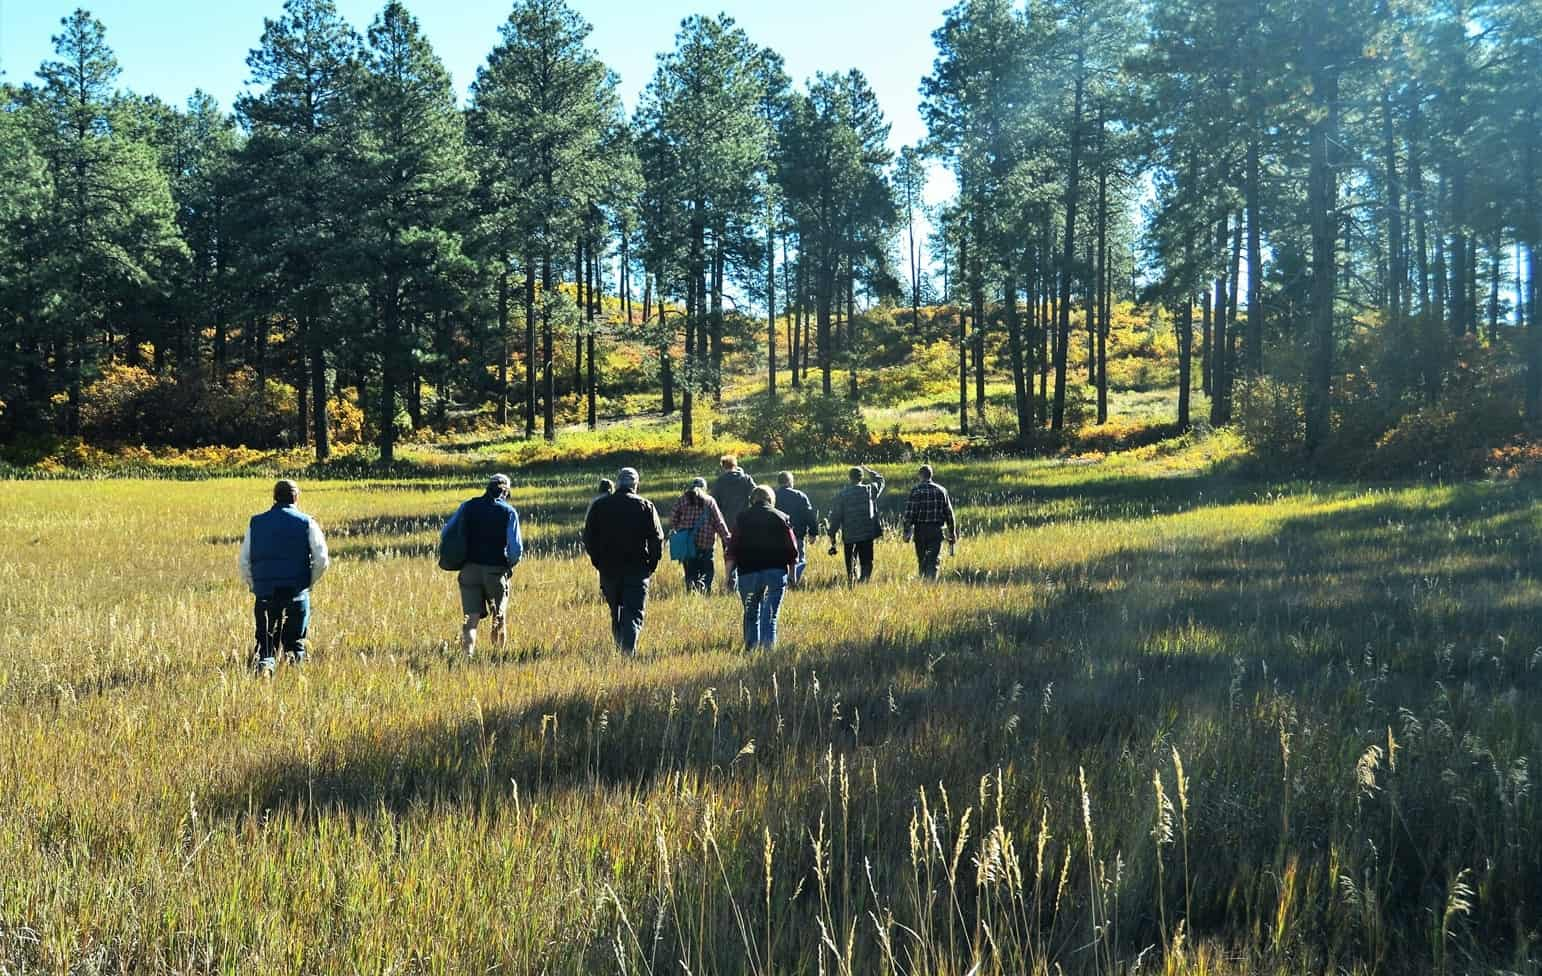 Group participants walking through a field towards a forest stand.